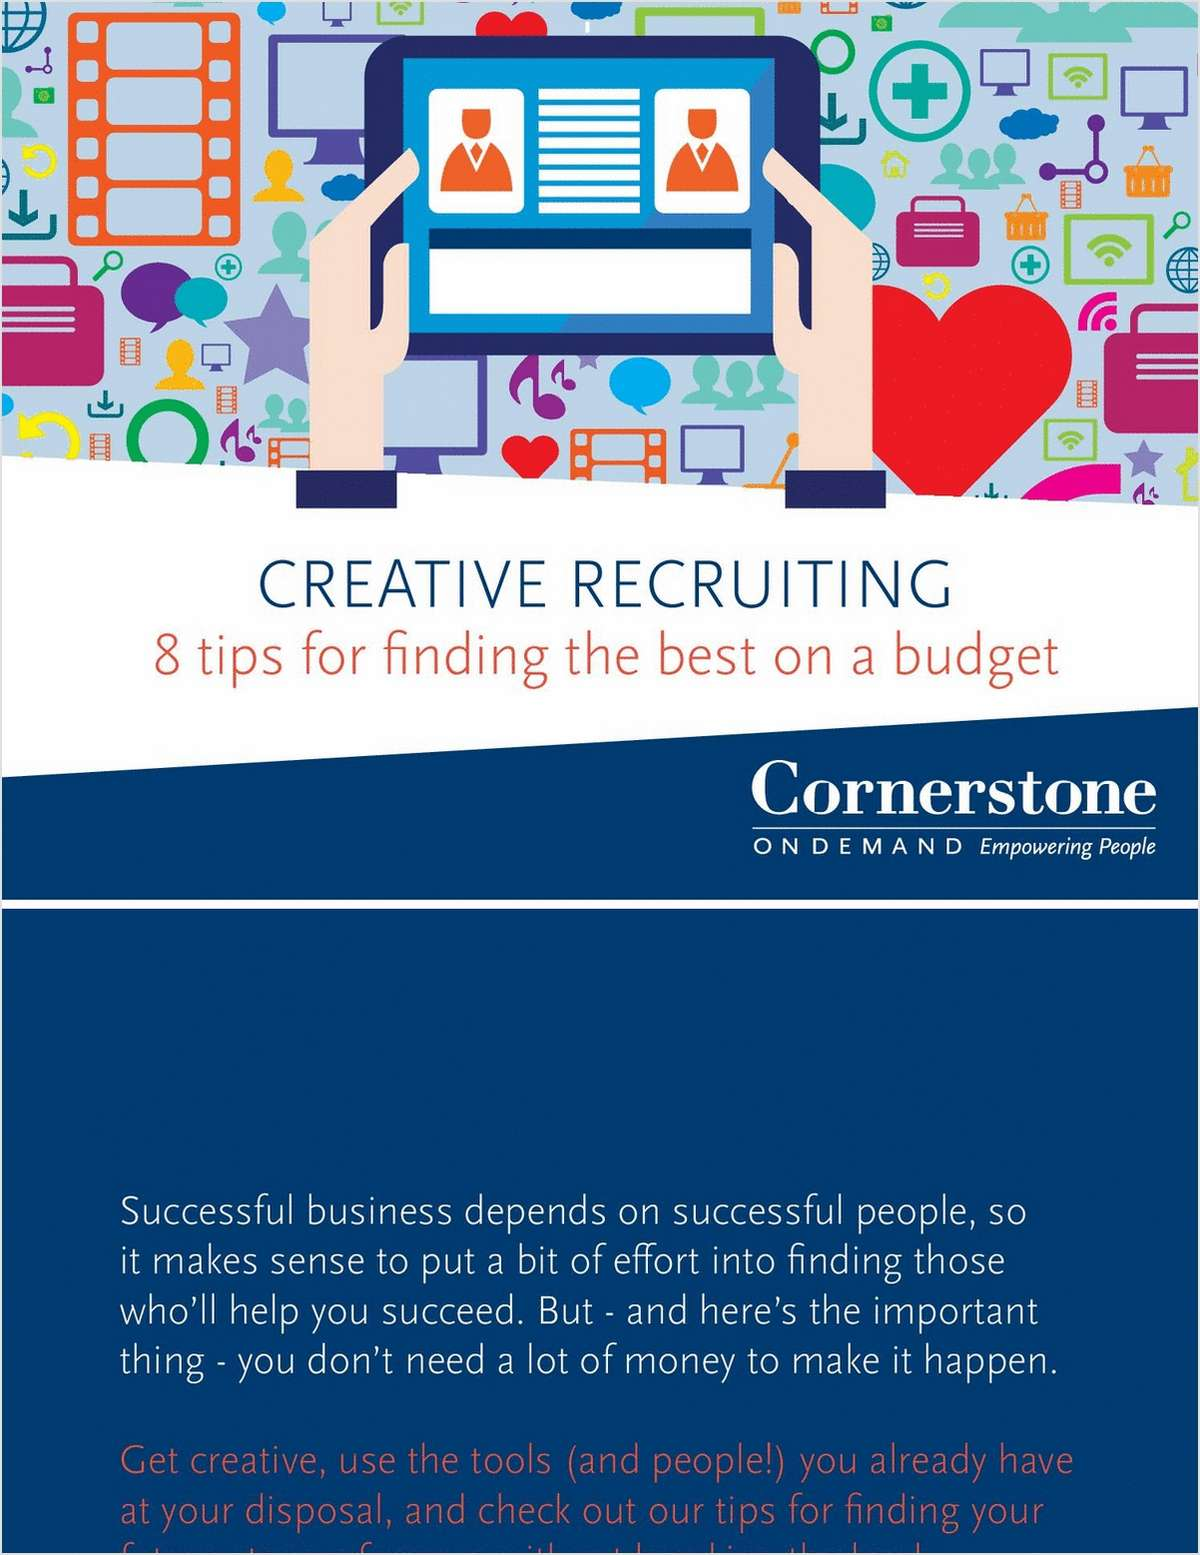 Creative Recruiting: 8 Tips for Finding the Best on a Budget